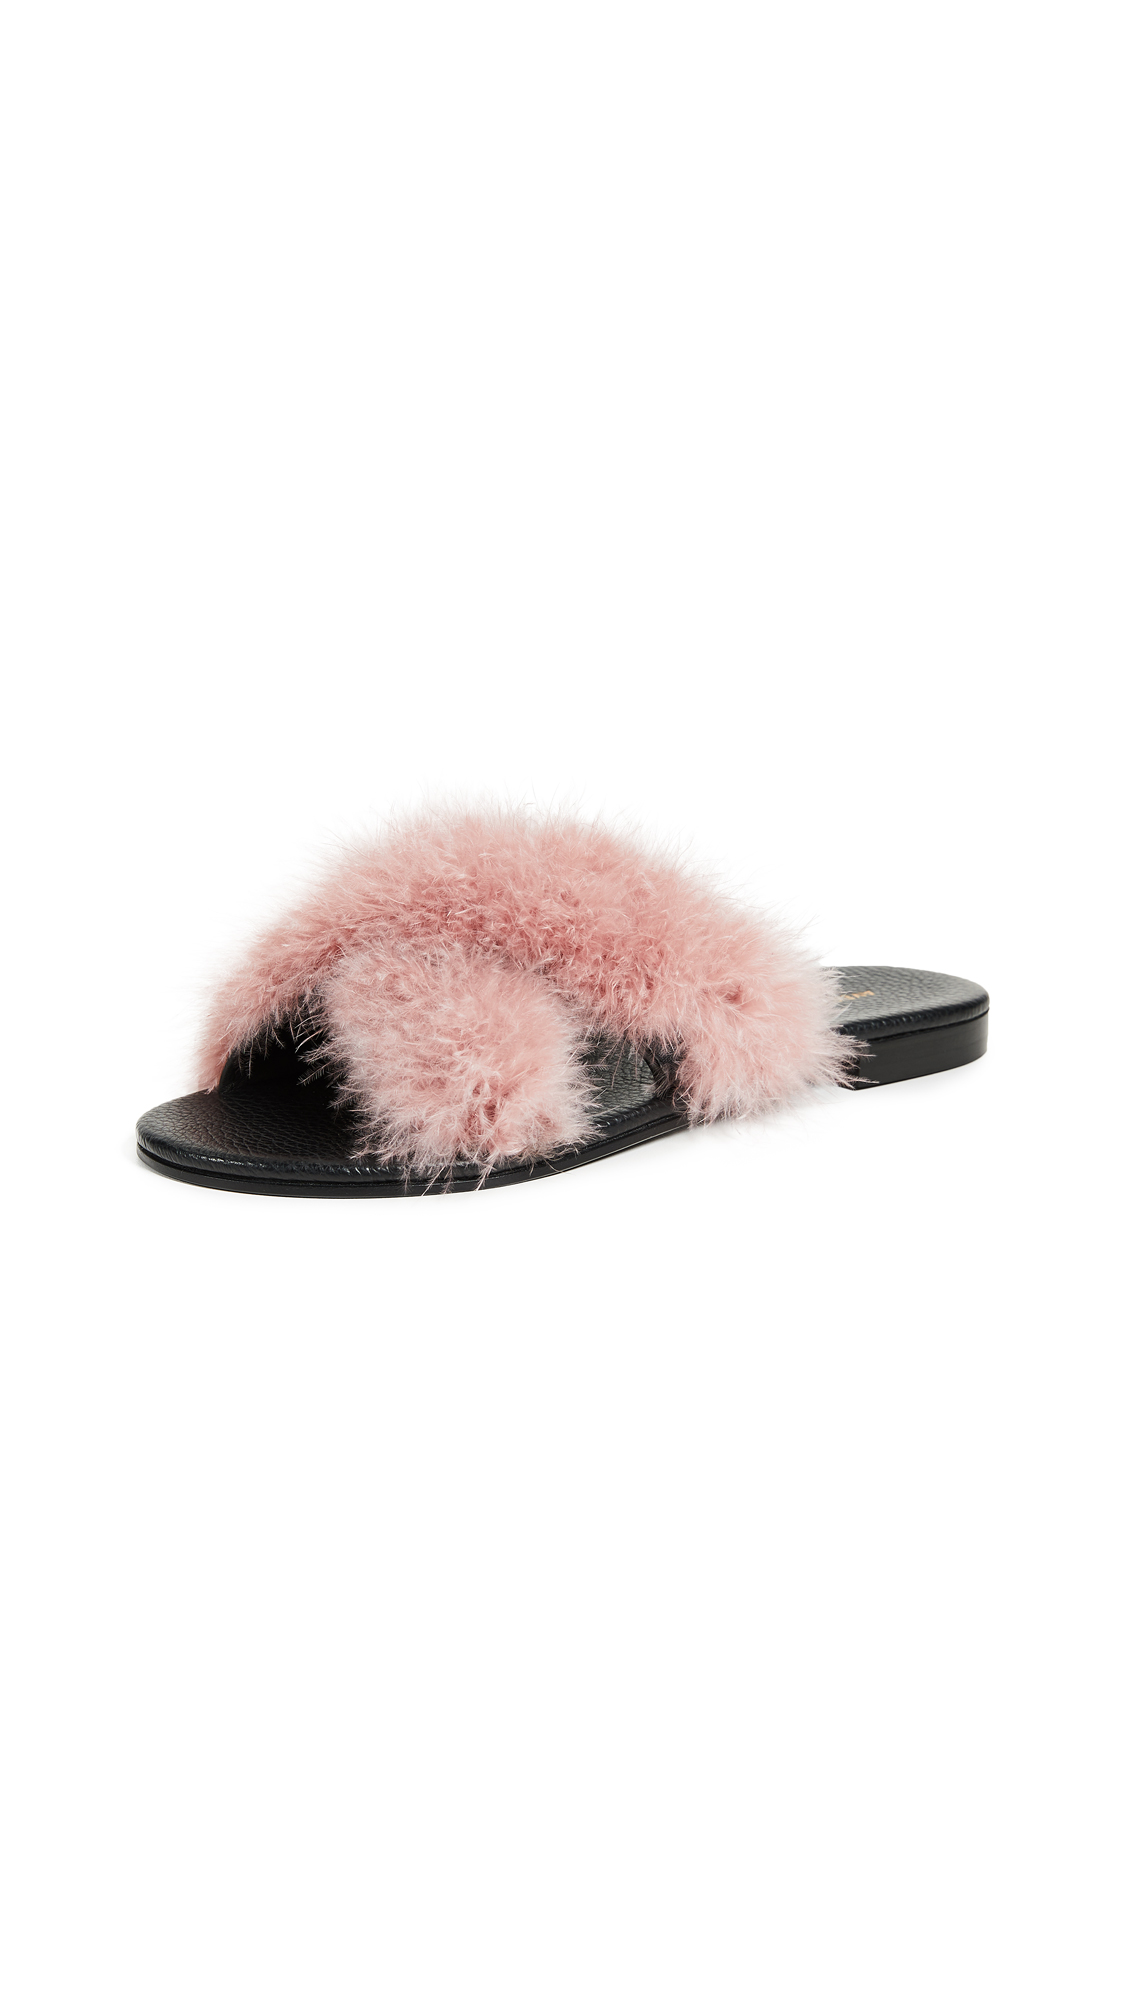 Avec Moderation St. Tropez Slide Sandals - Antique Rose